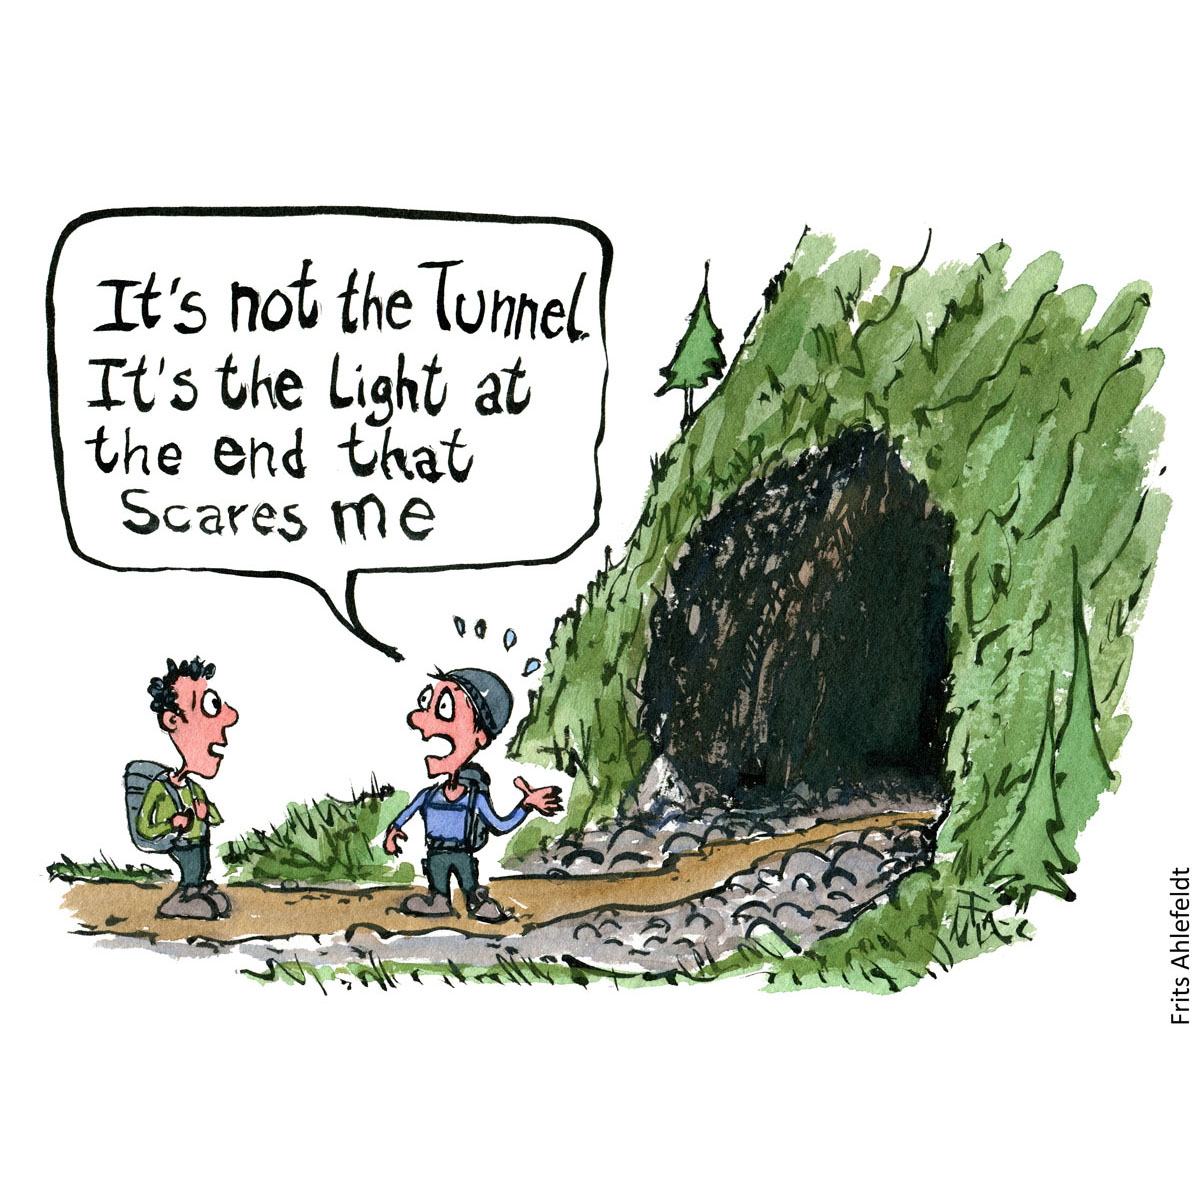 Drawing of hiker in front of tunnel saying it is not the tunnel. It is the light at the end that scares me. Hiking illustration and idea by Frits Ahlefeldt